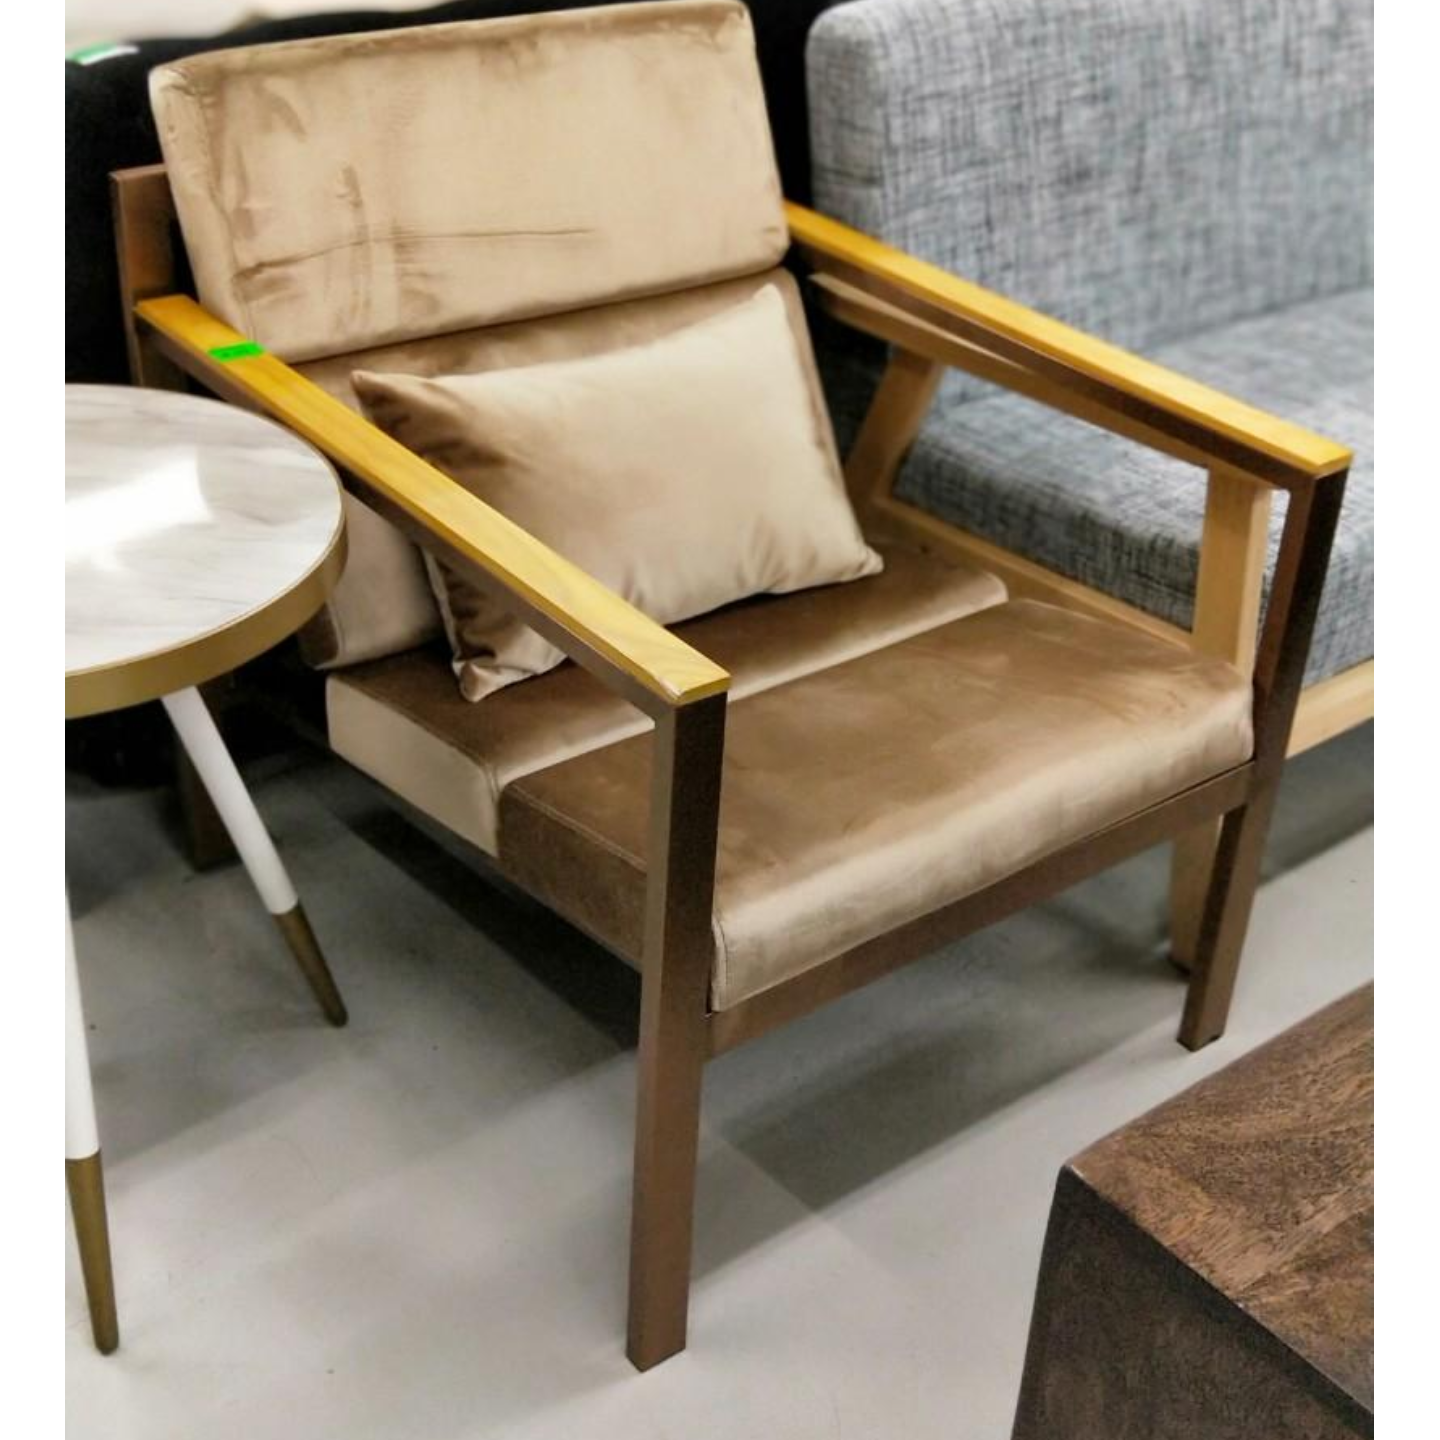 HYUNJU Armchair in Light Brown with TITANIUM GOLD FRAME